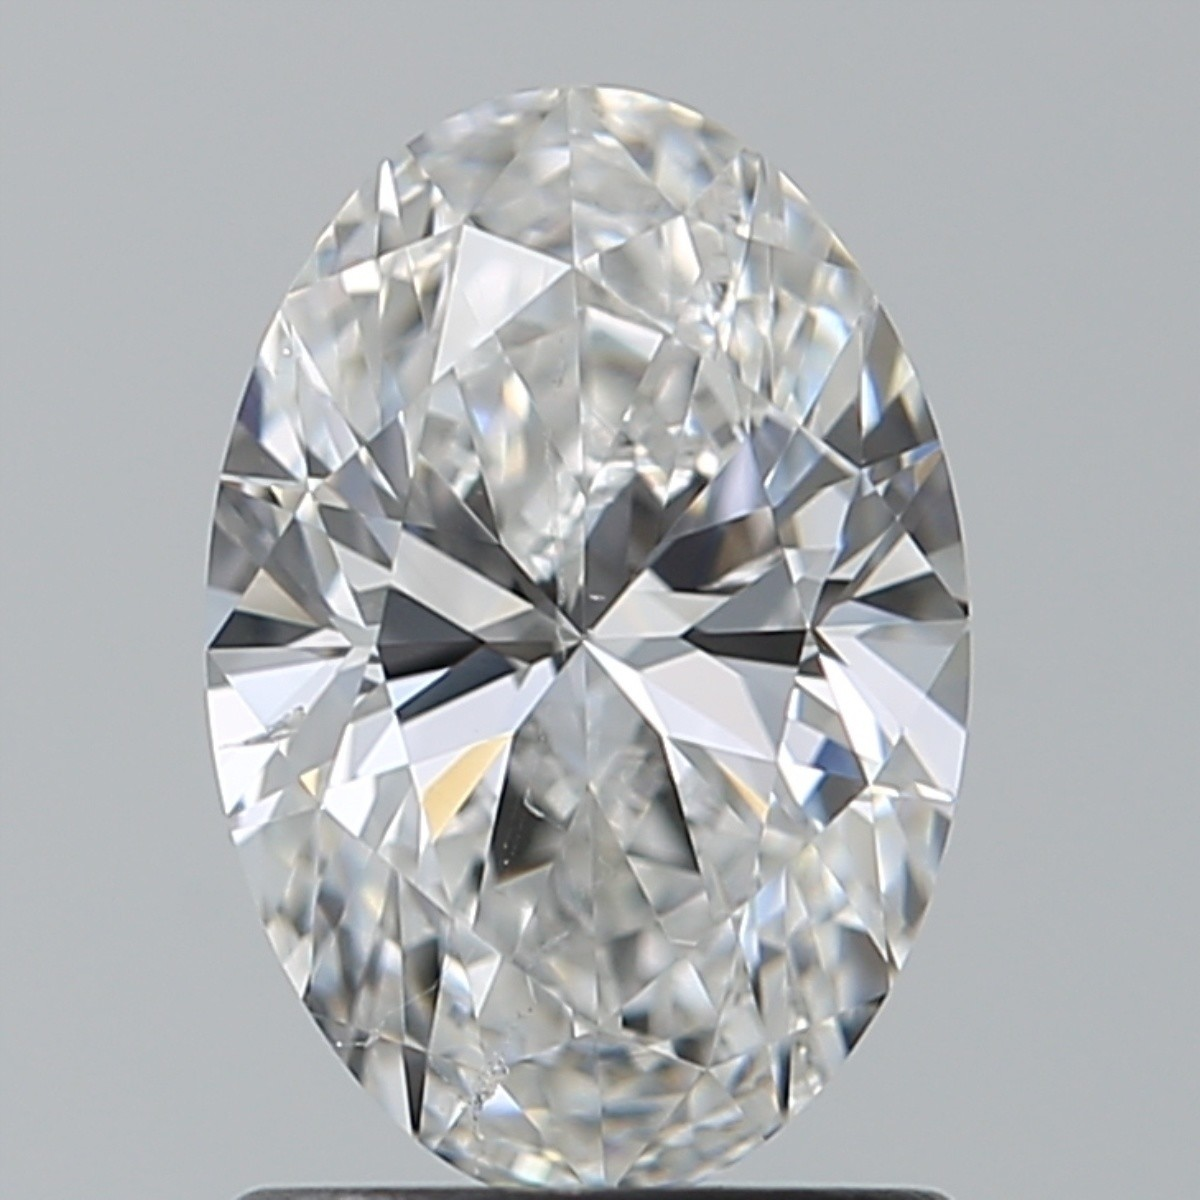 1.21 Carat Oval Diamond (E/SI1)